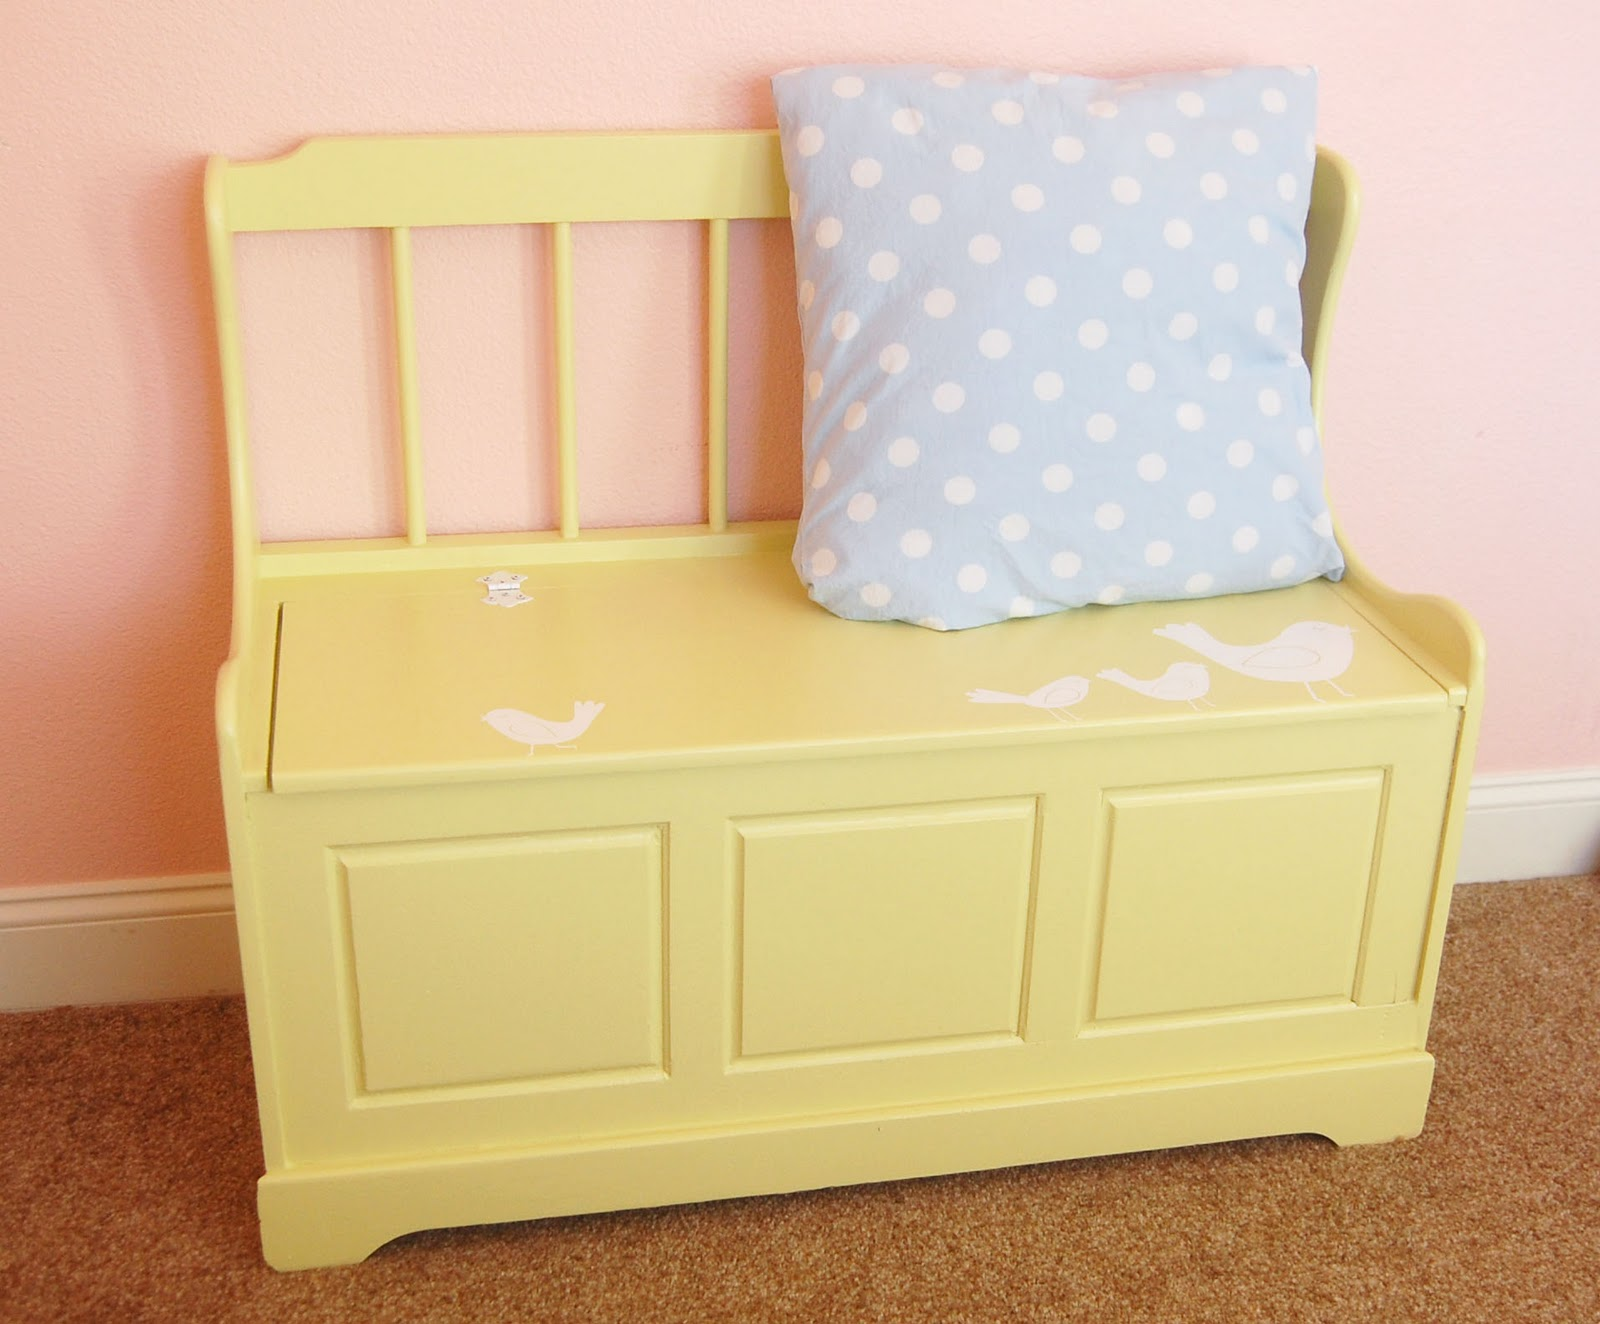 Toy Box Bench Make-Over | abc decor